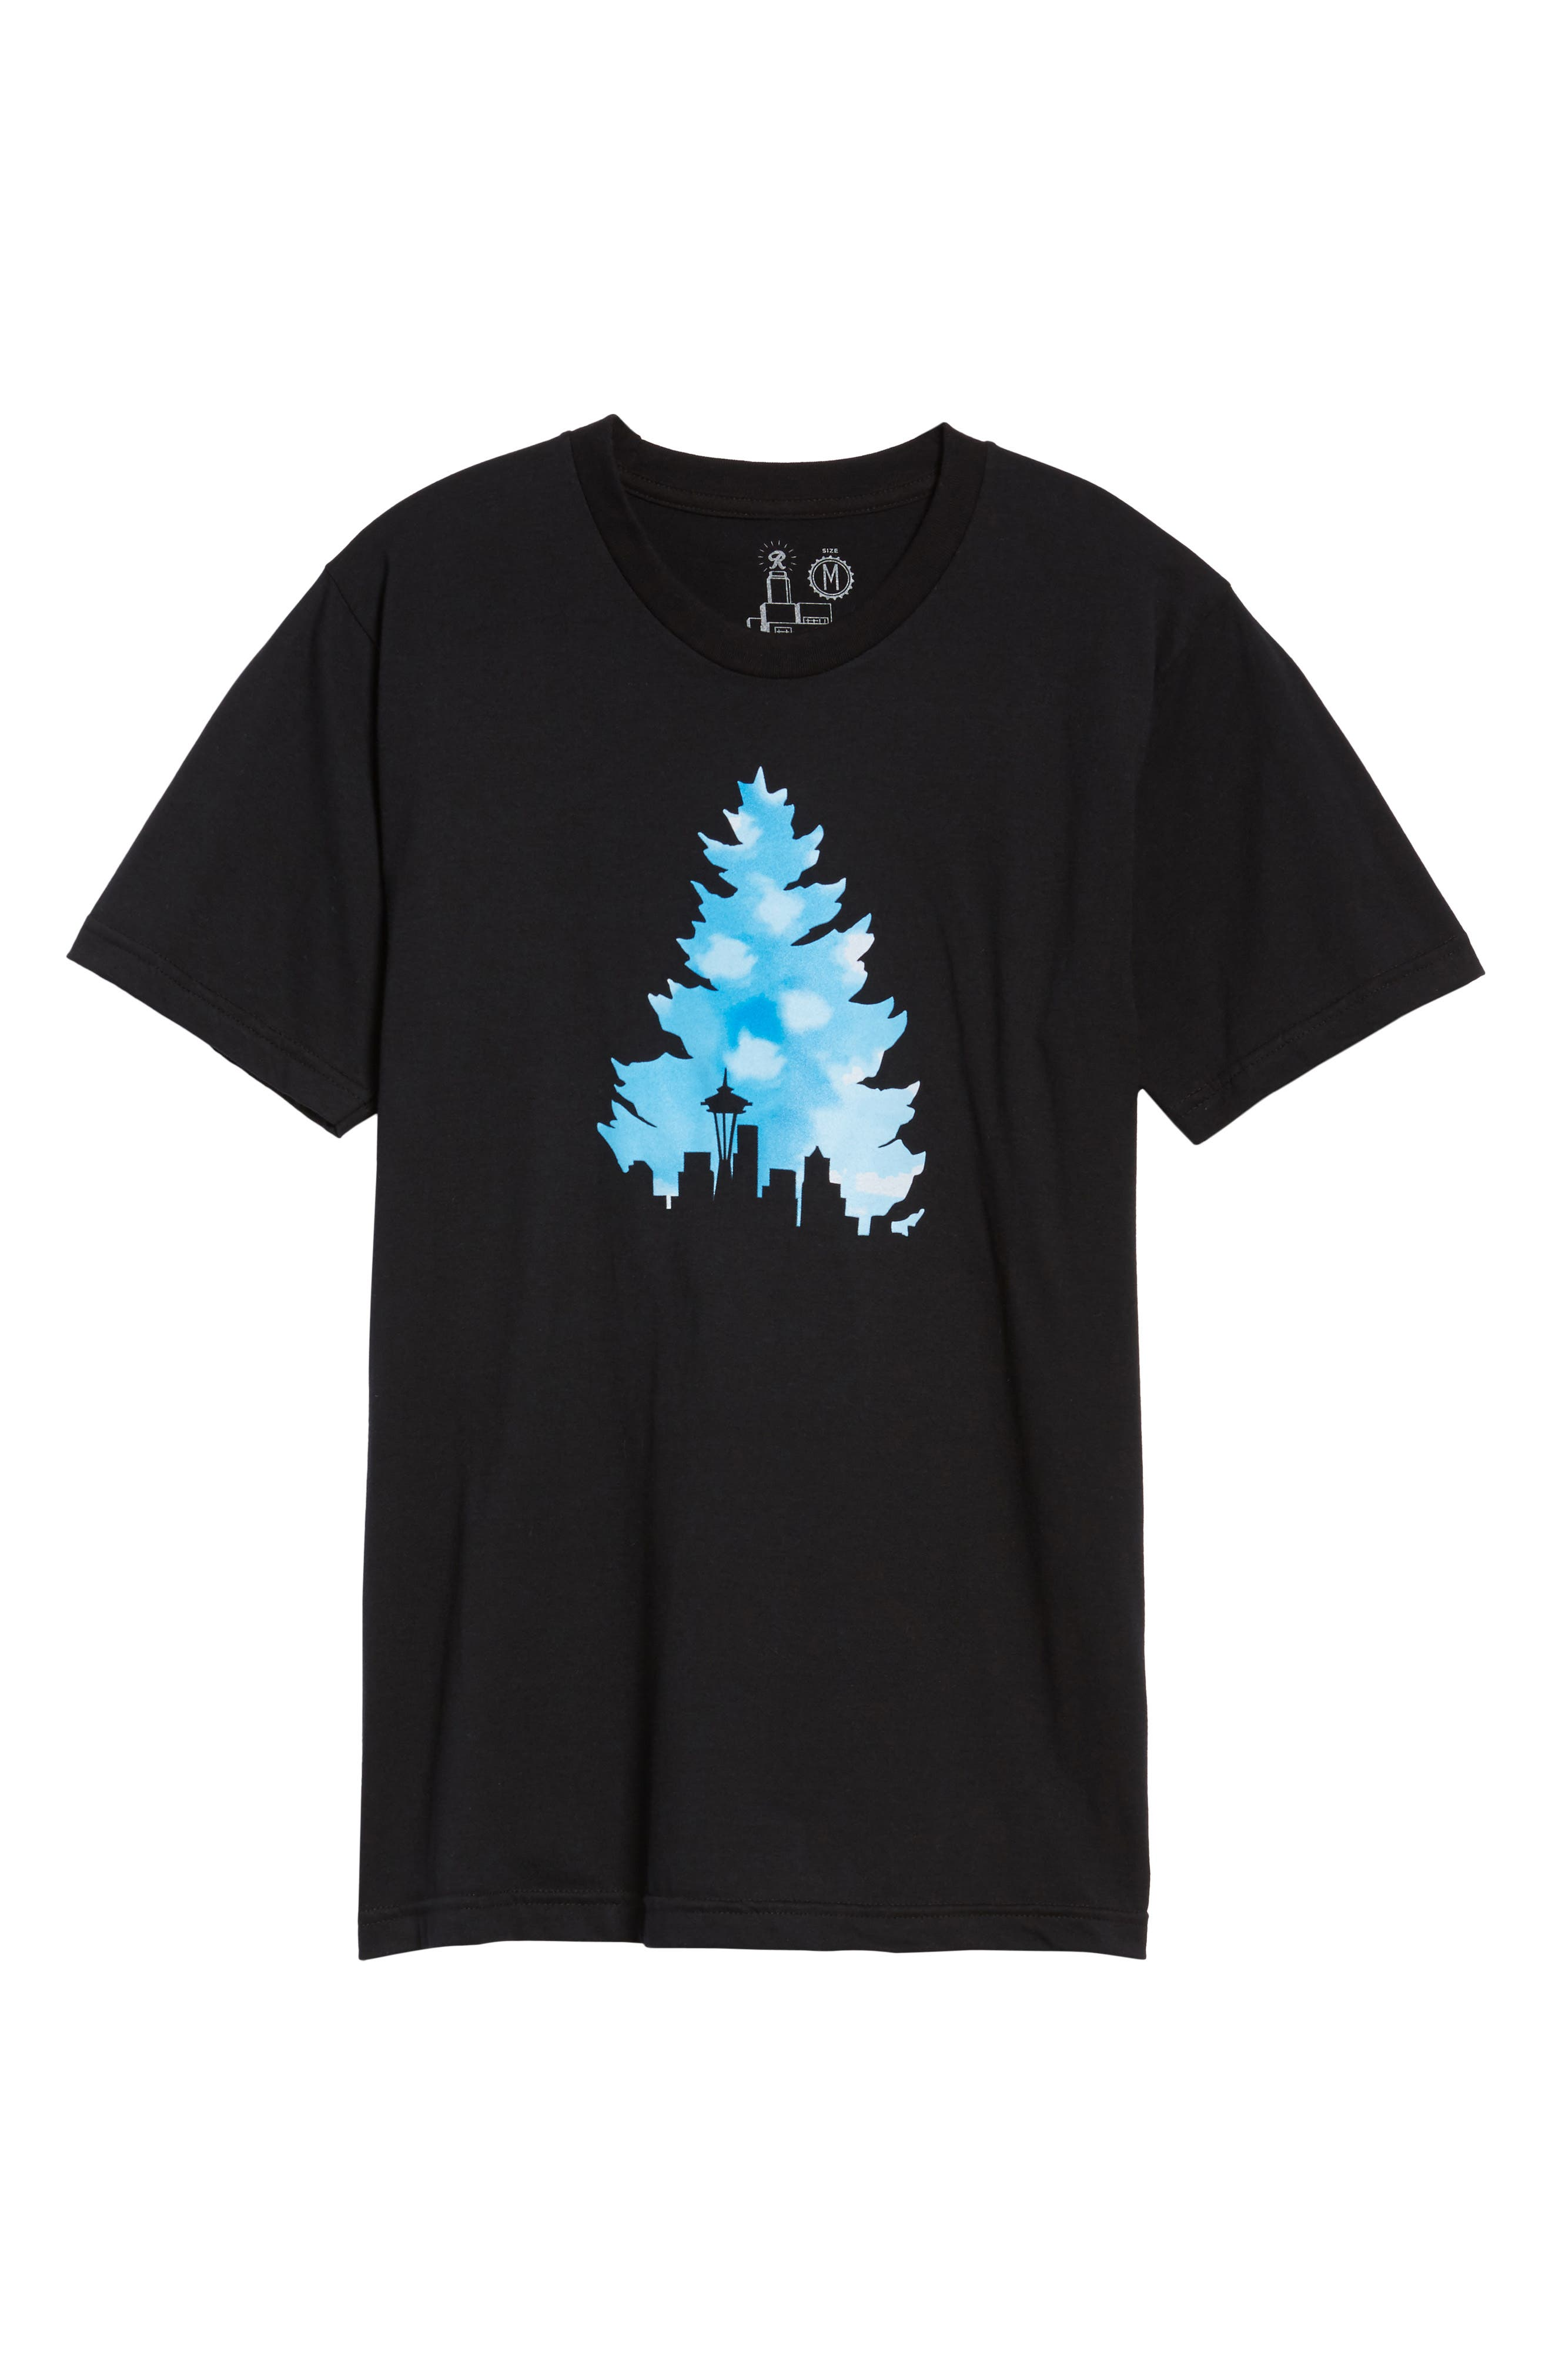 Johnny Tree Clouds T-Shirt,                             Alternate thumbnail 6, color,                             001